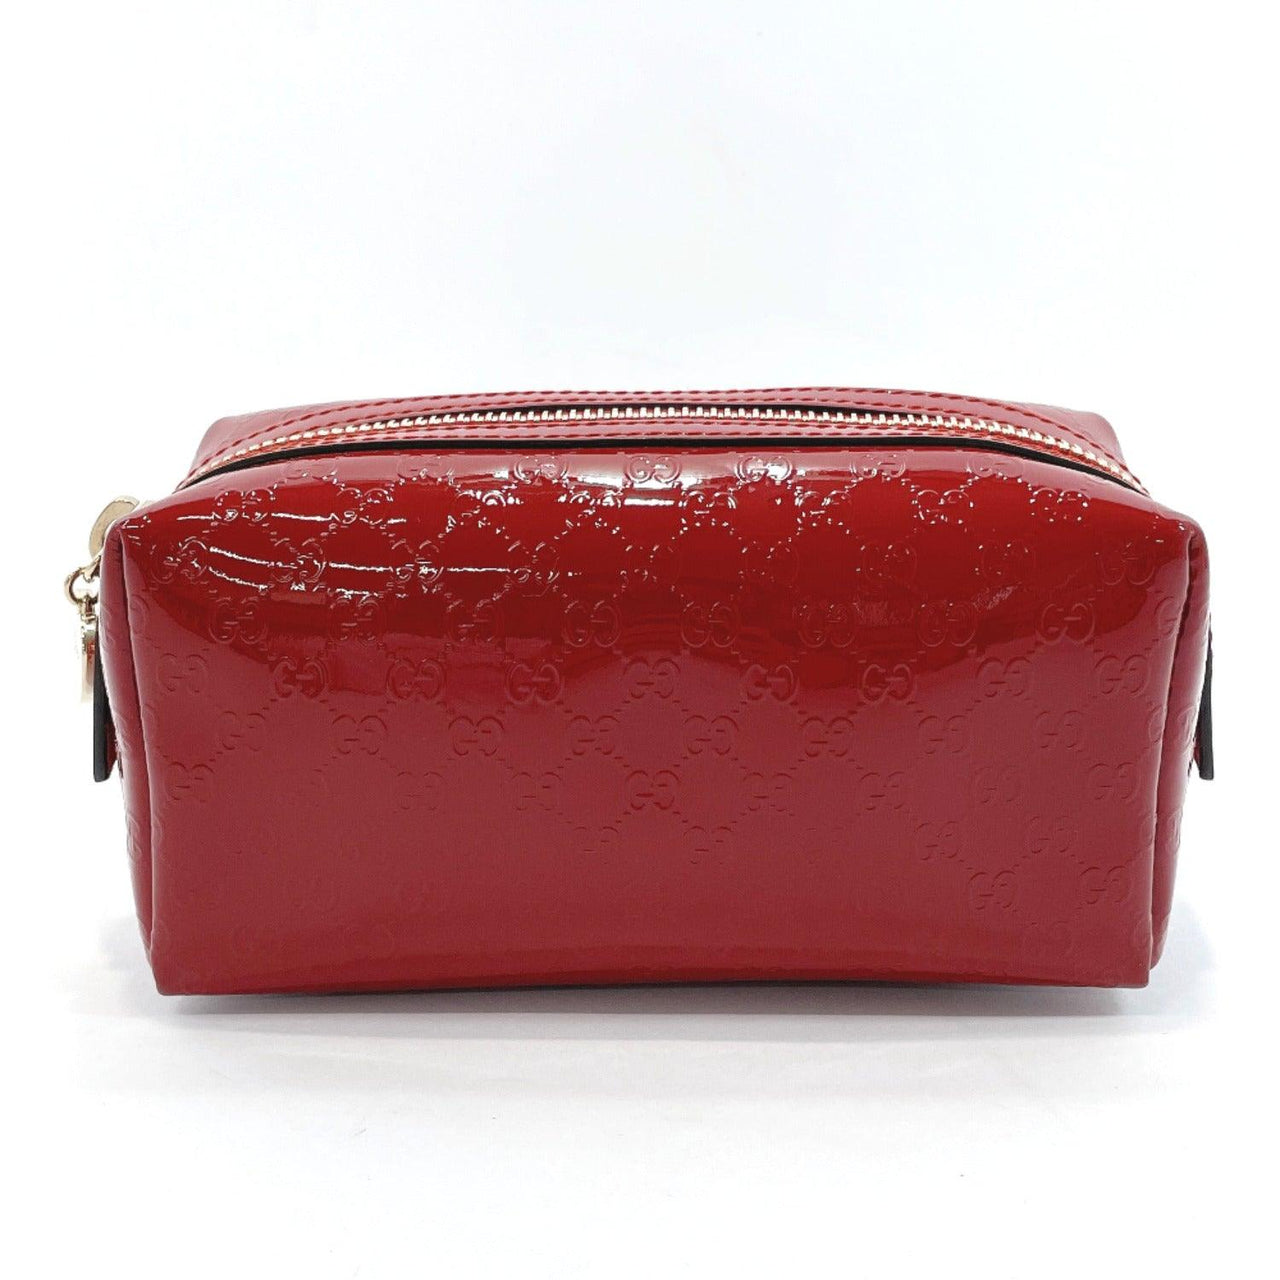 GUCCI Pouch 153228 Micro Gucci Shima Patent leather Red Women Used